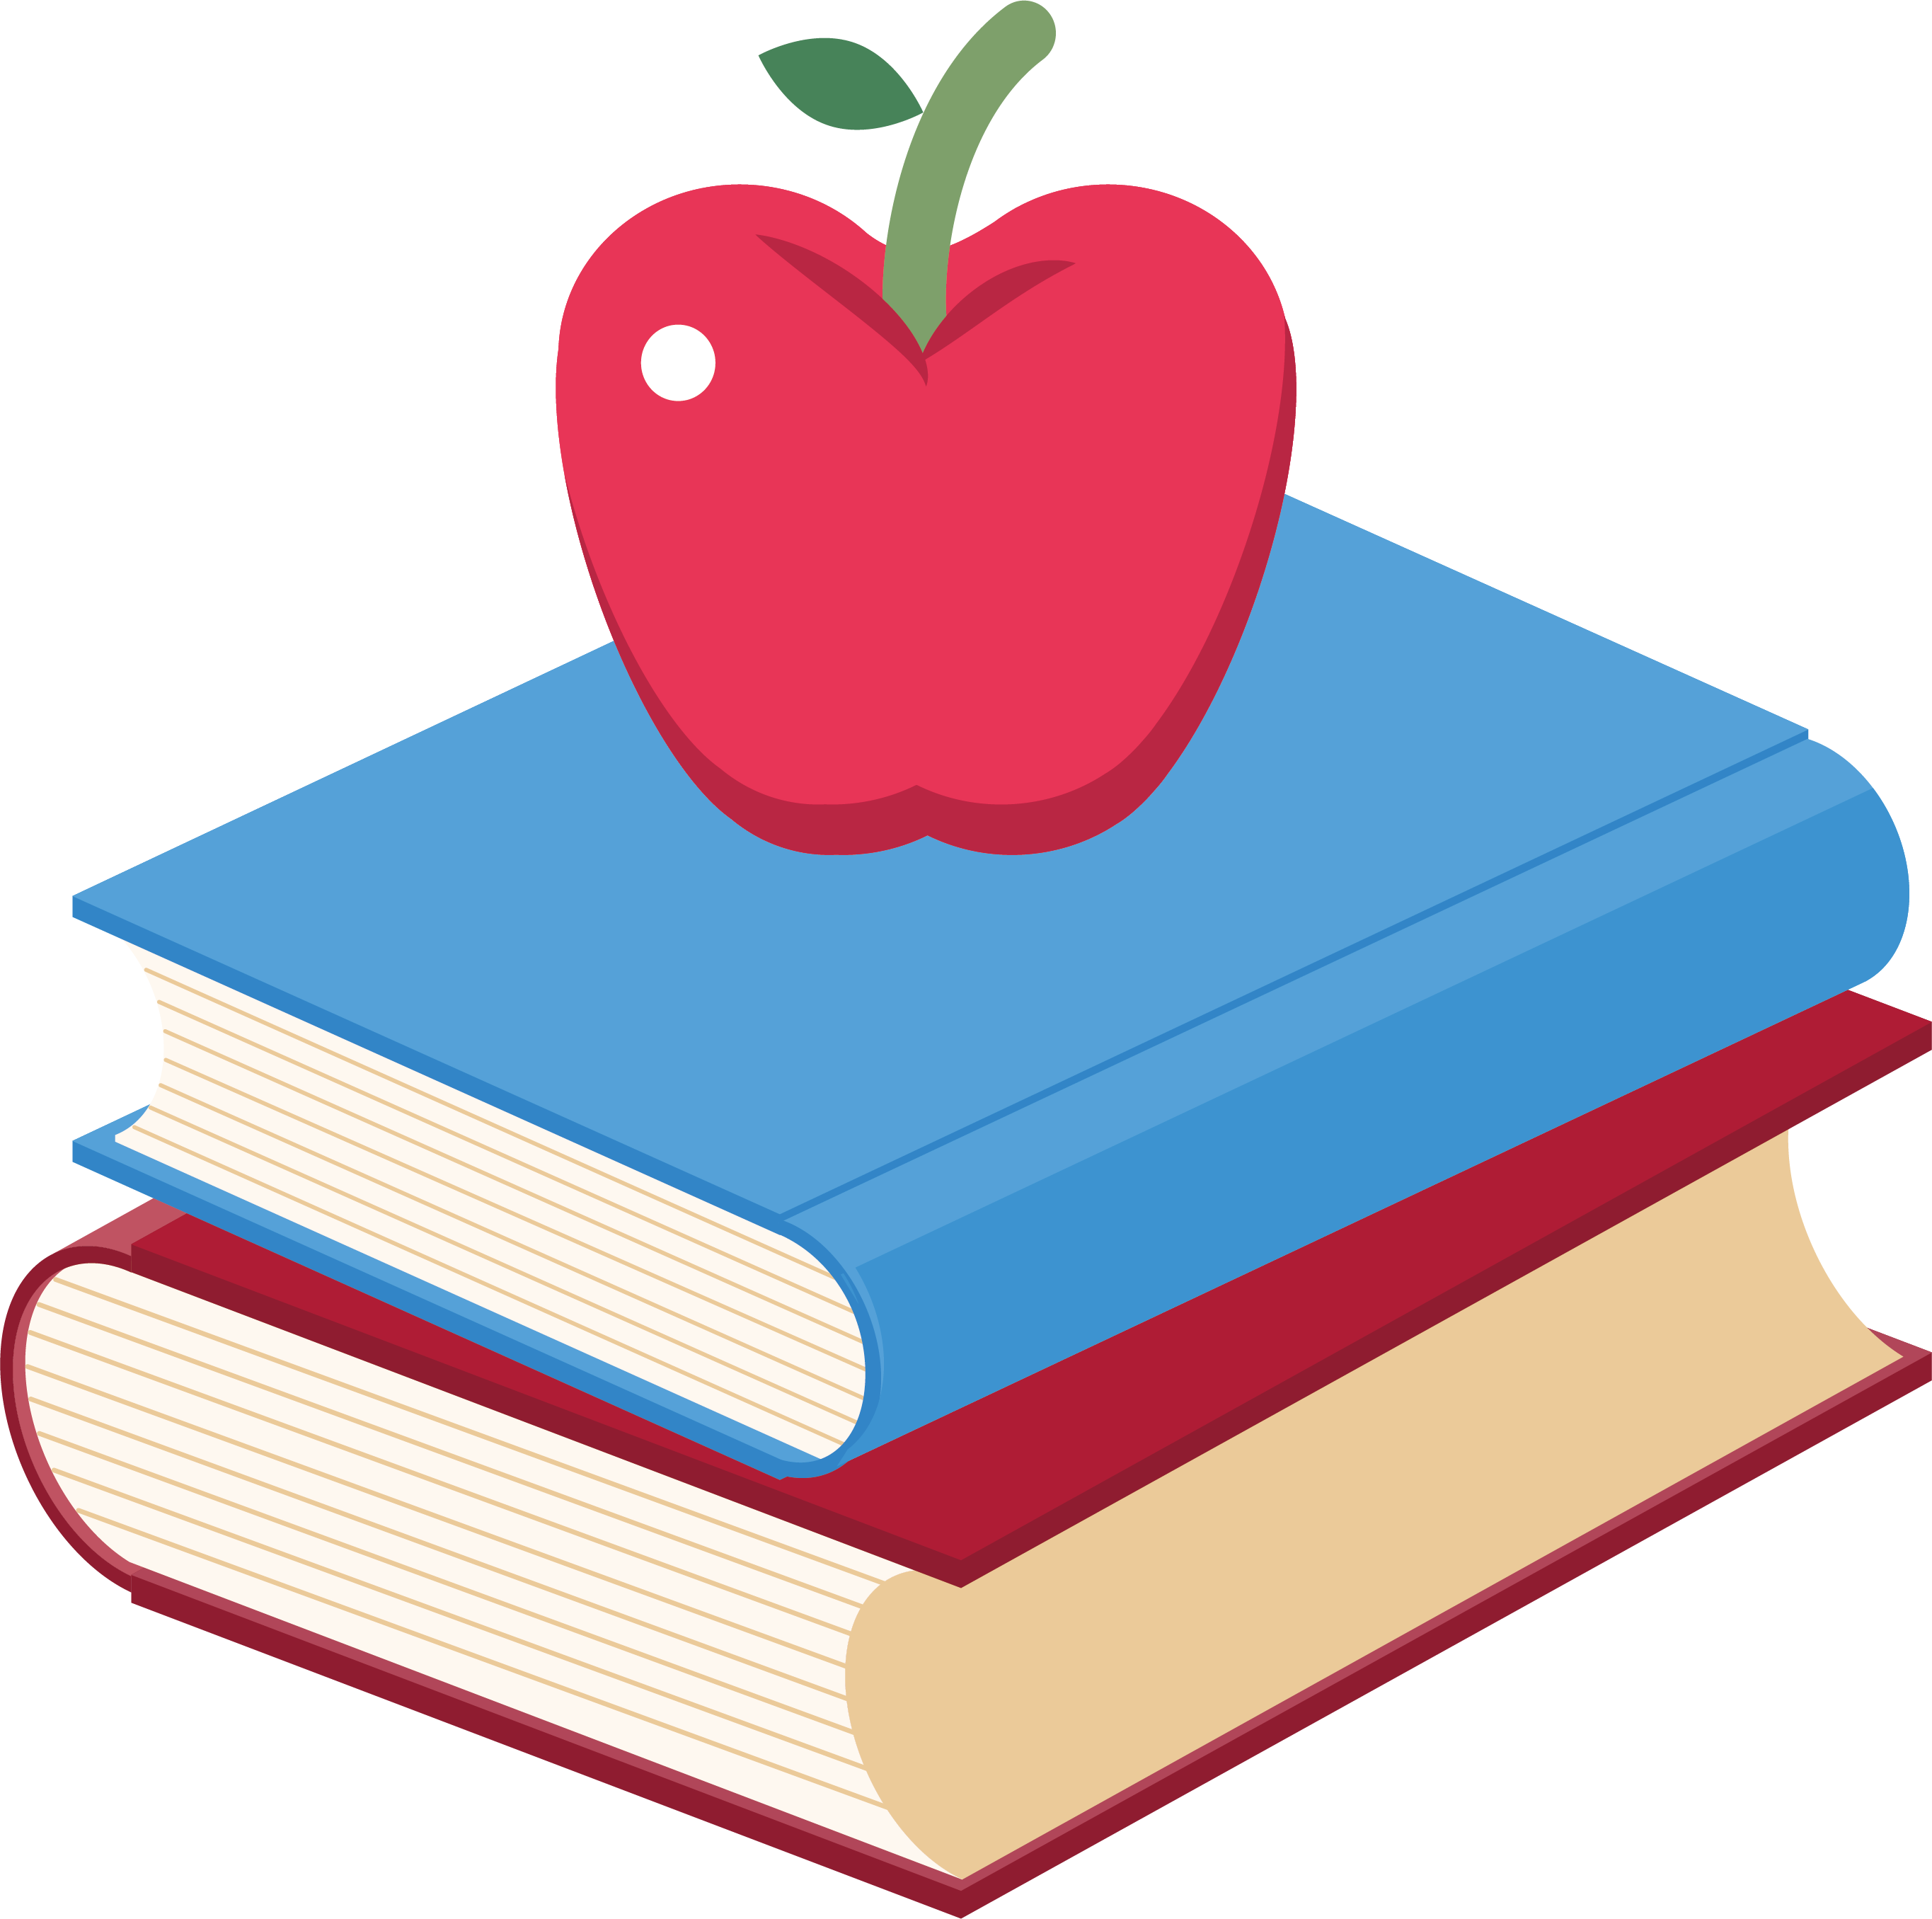 Apple clip art two. Knowledge clipart book